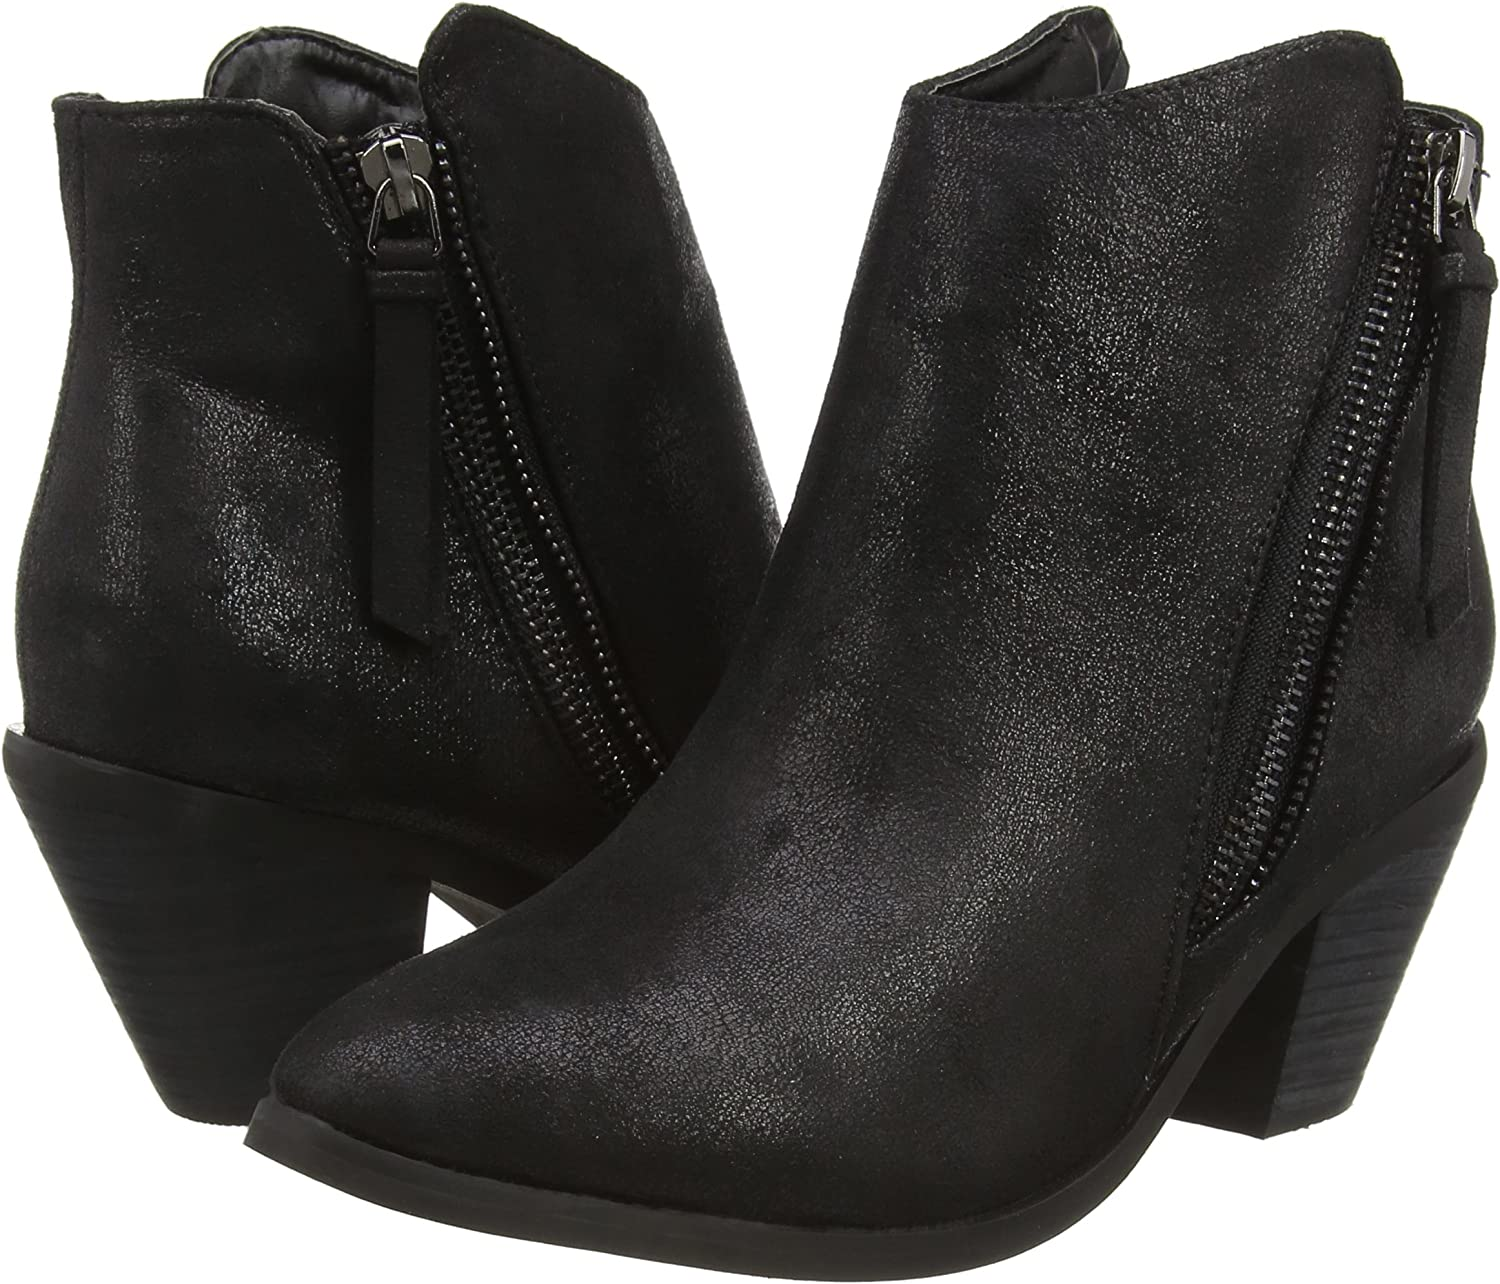 Grey Spot On Ankle Boots UK Sizes 4-8 F50450 Ladies Black